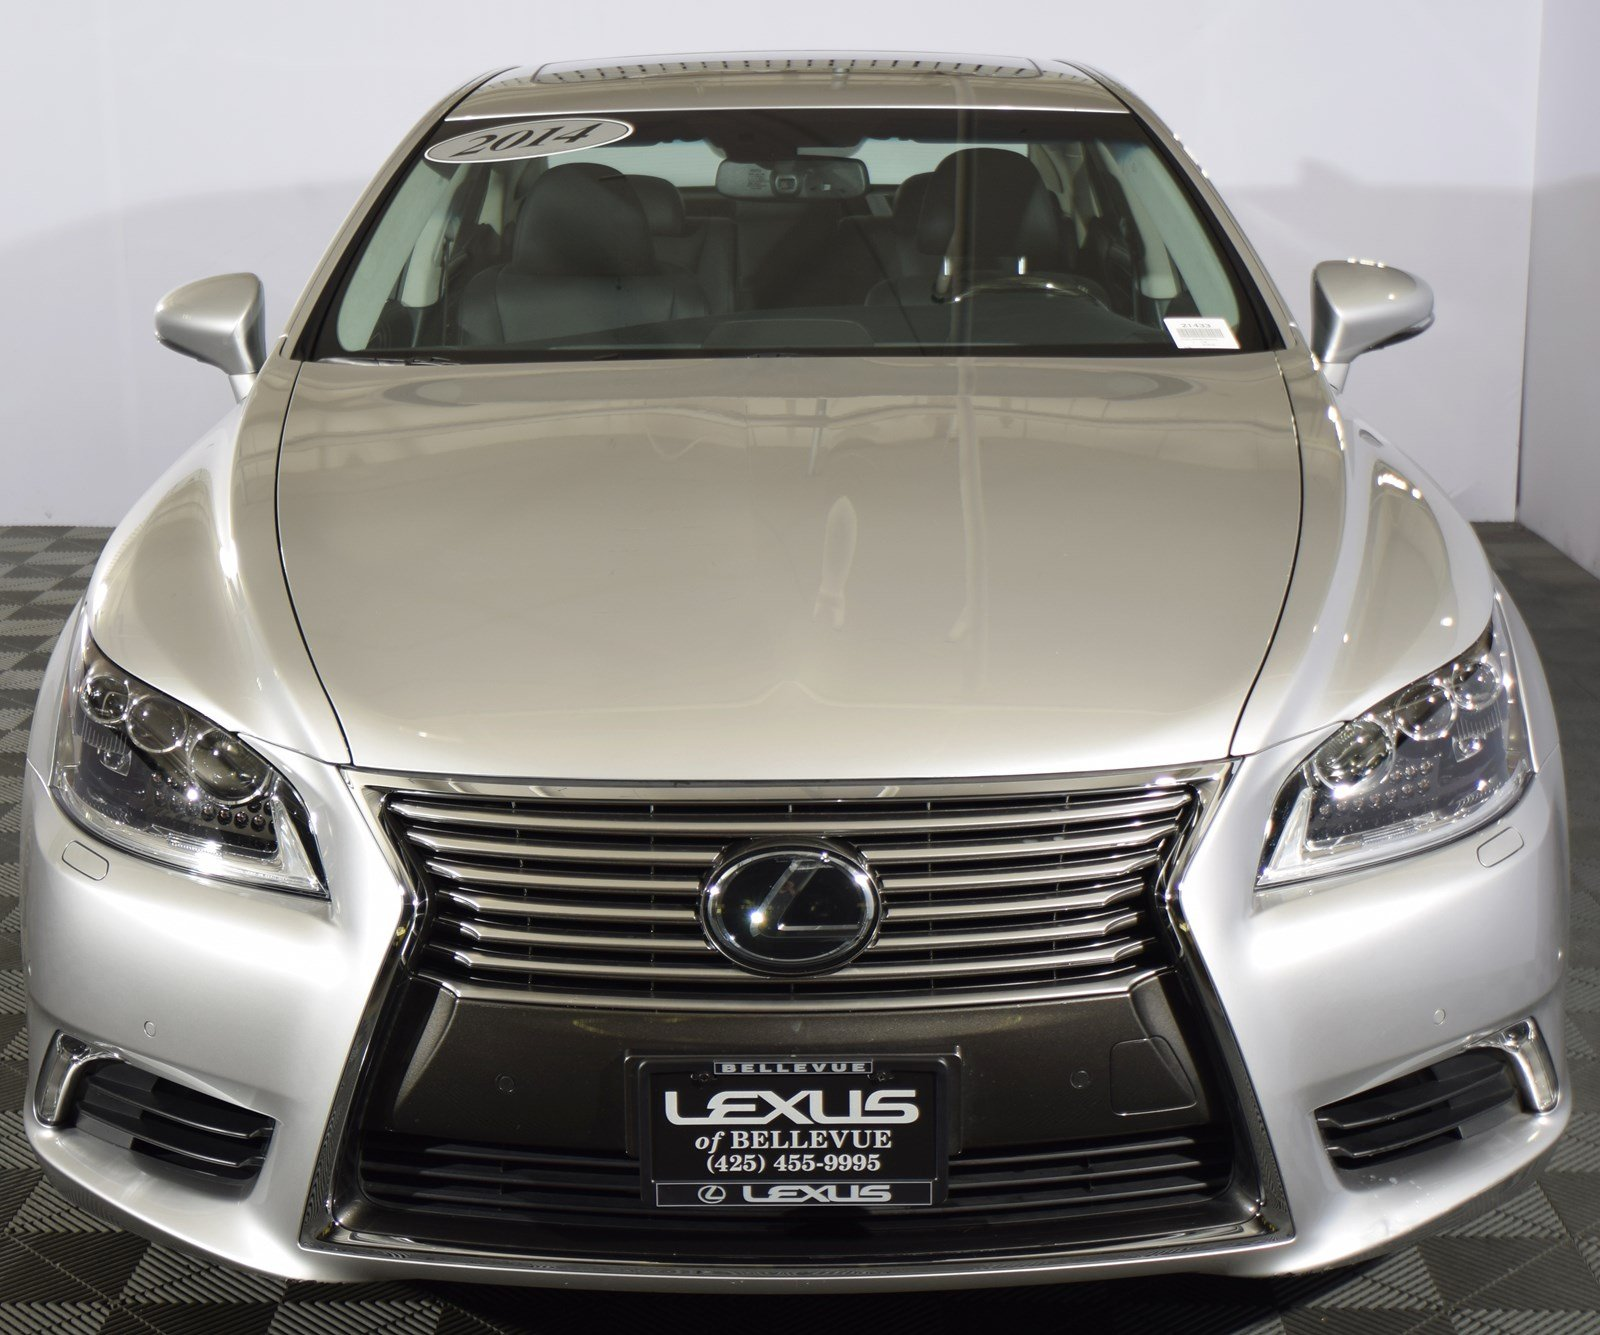 Lexus Ls 460 L For Sale ▷ Used Cars Buysellsearch